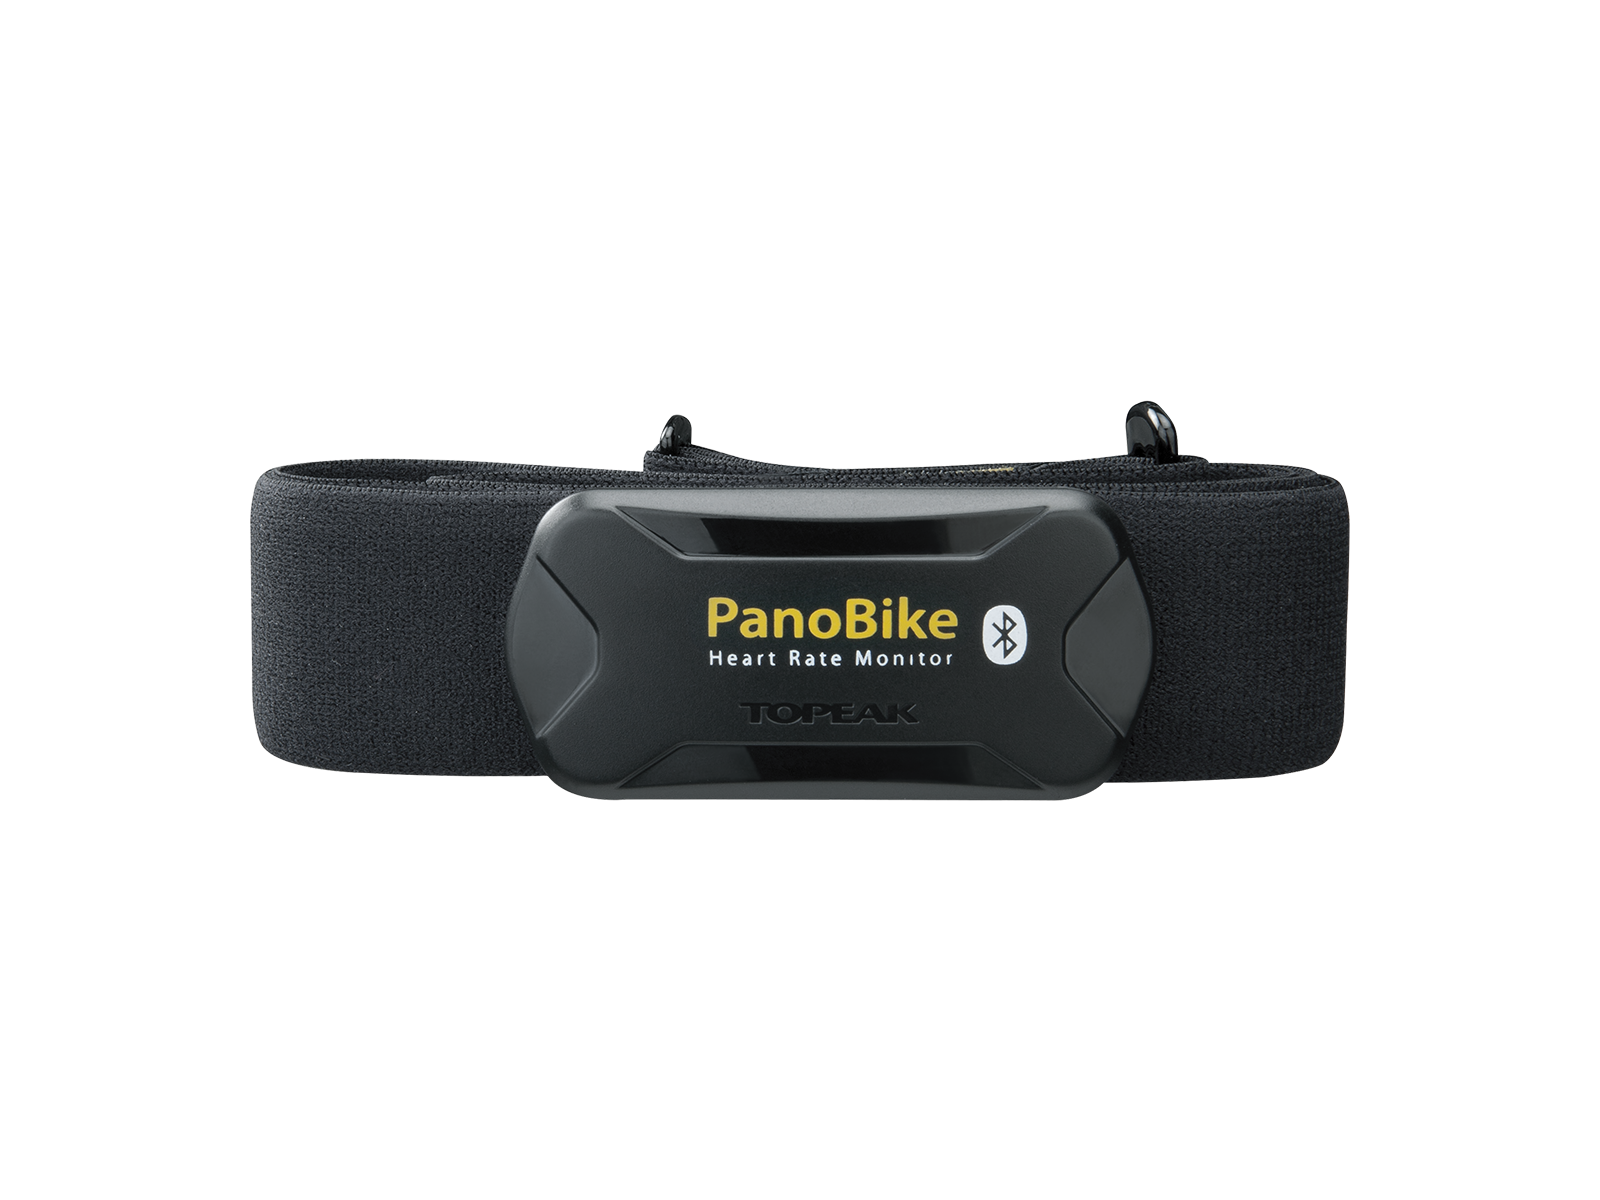 PANOBIKE HEART RATE MONITOR | Topeak